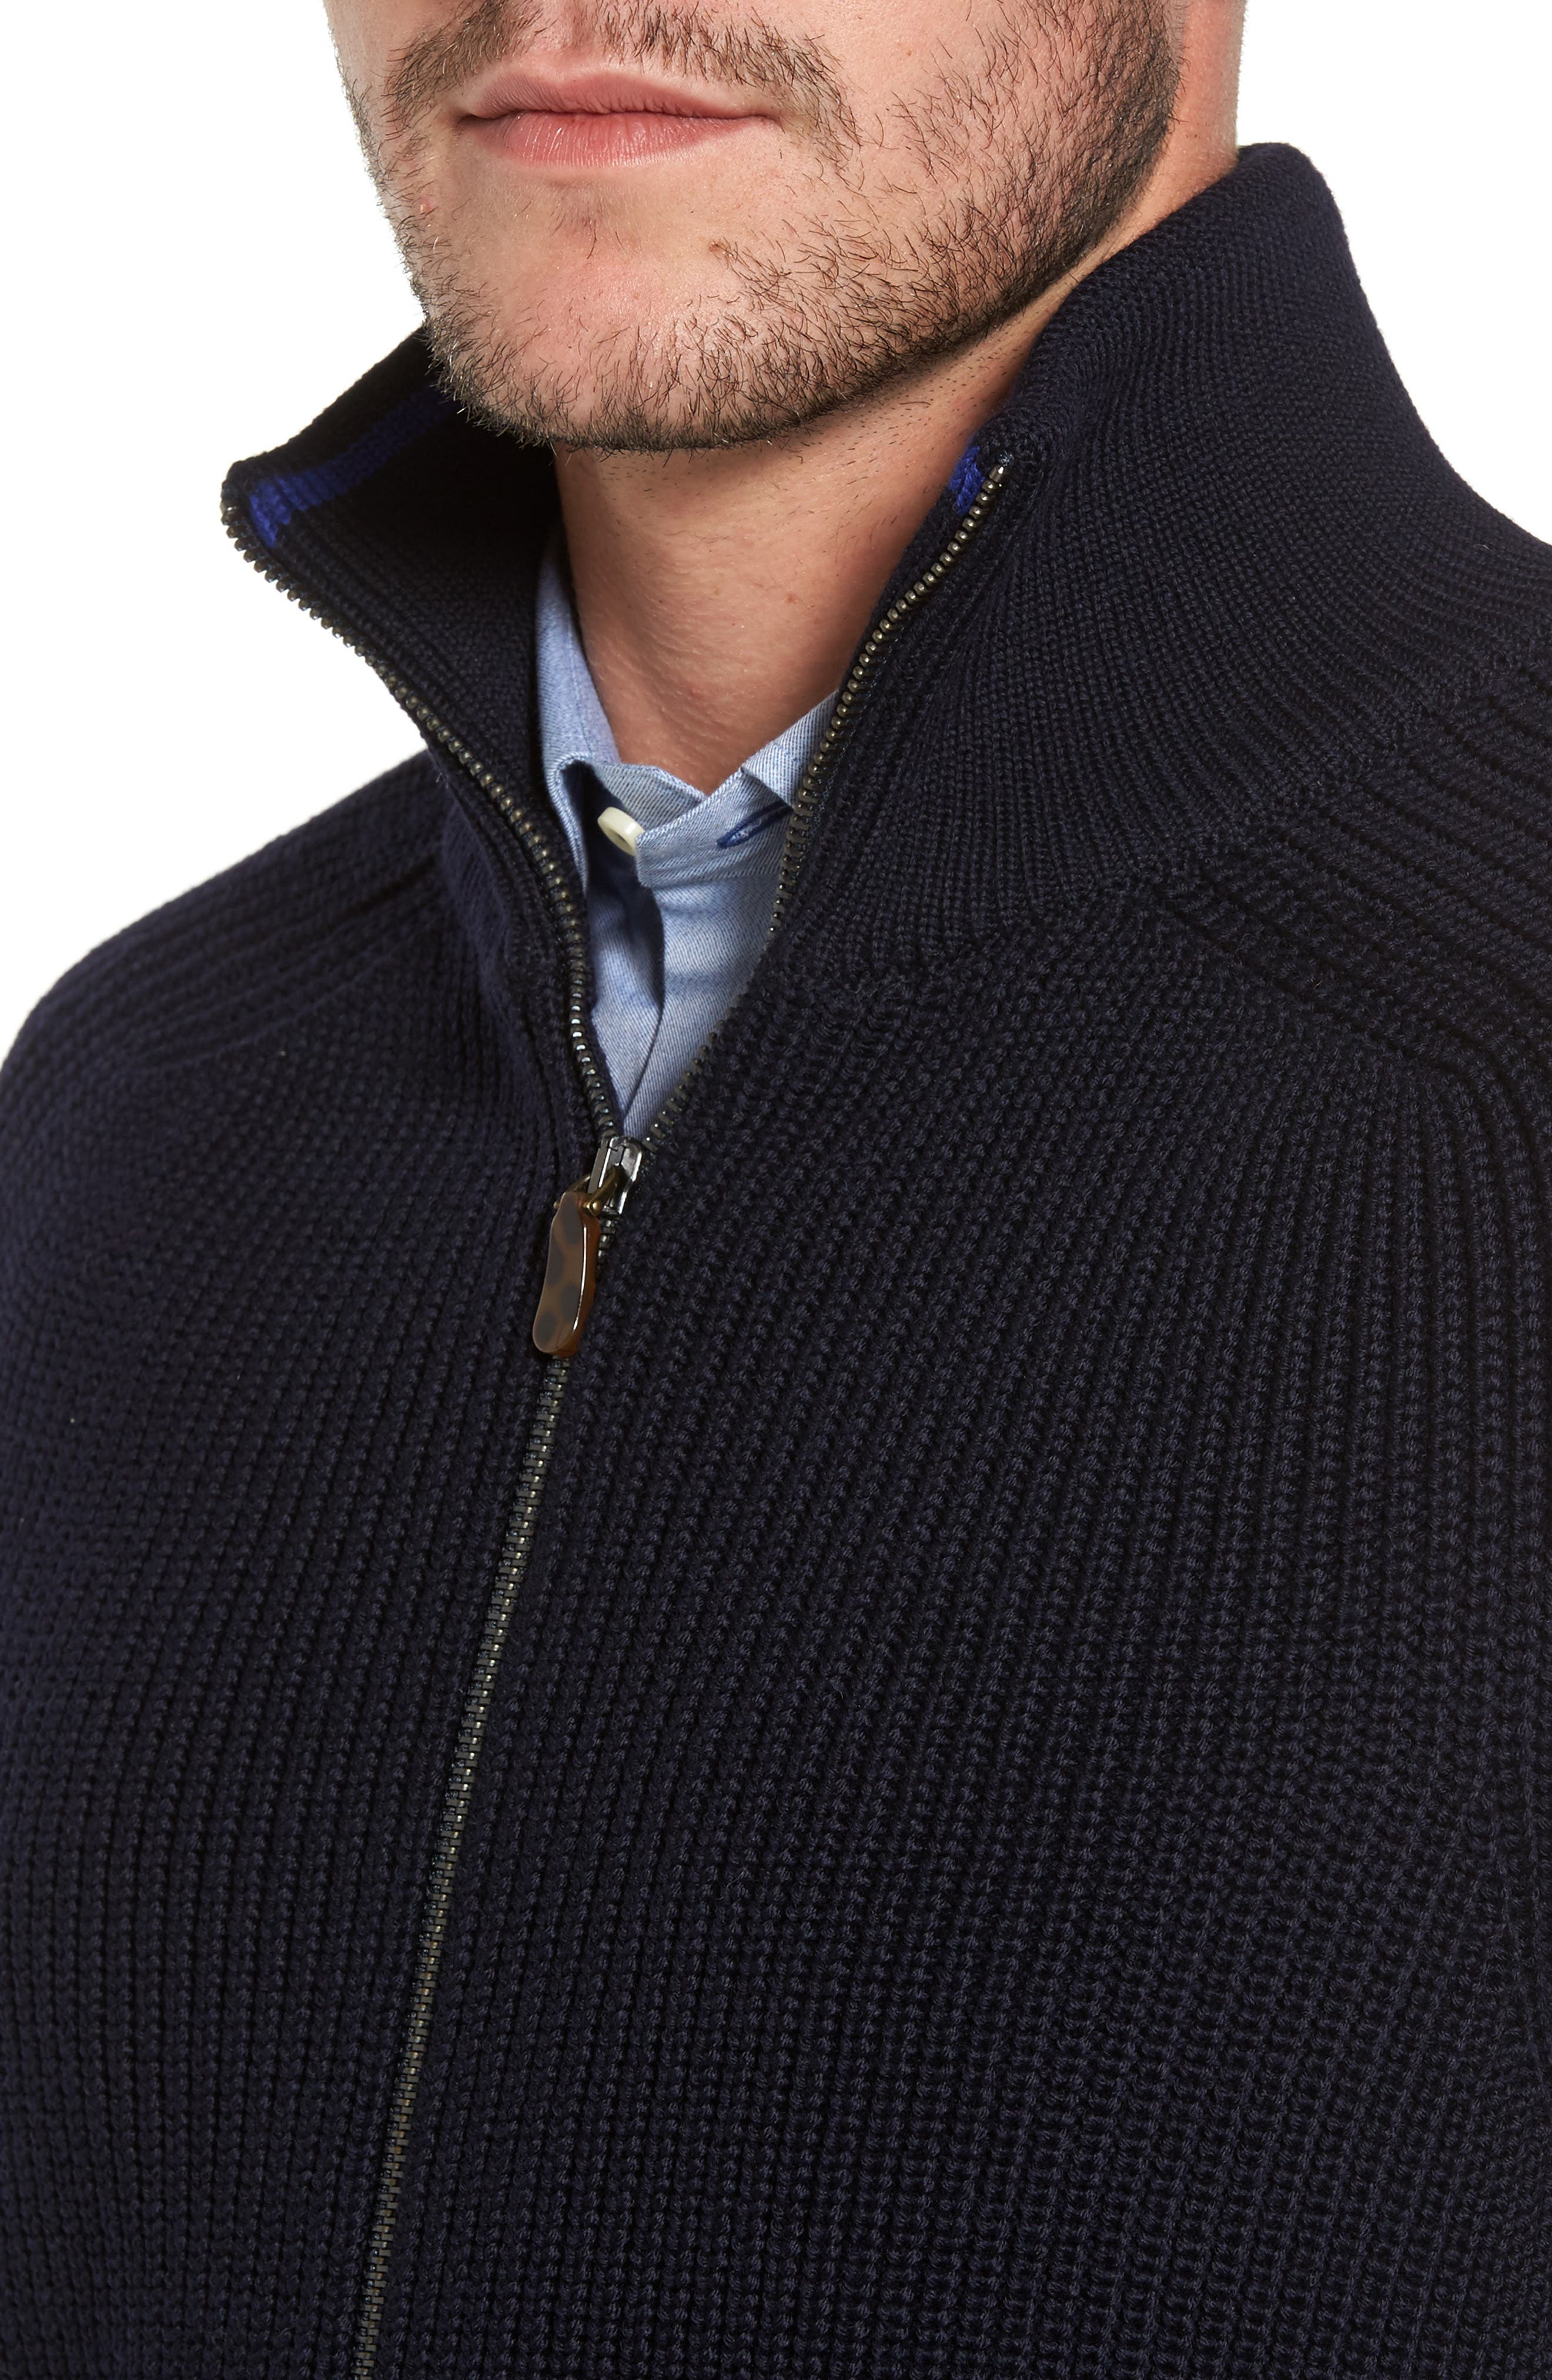 Shaker Stitch Wool Zip Cardigan,                             Alternate thumbnail 4, color,                             Navy